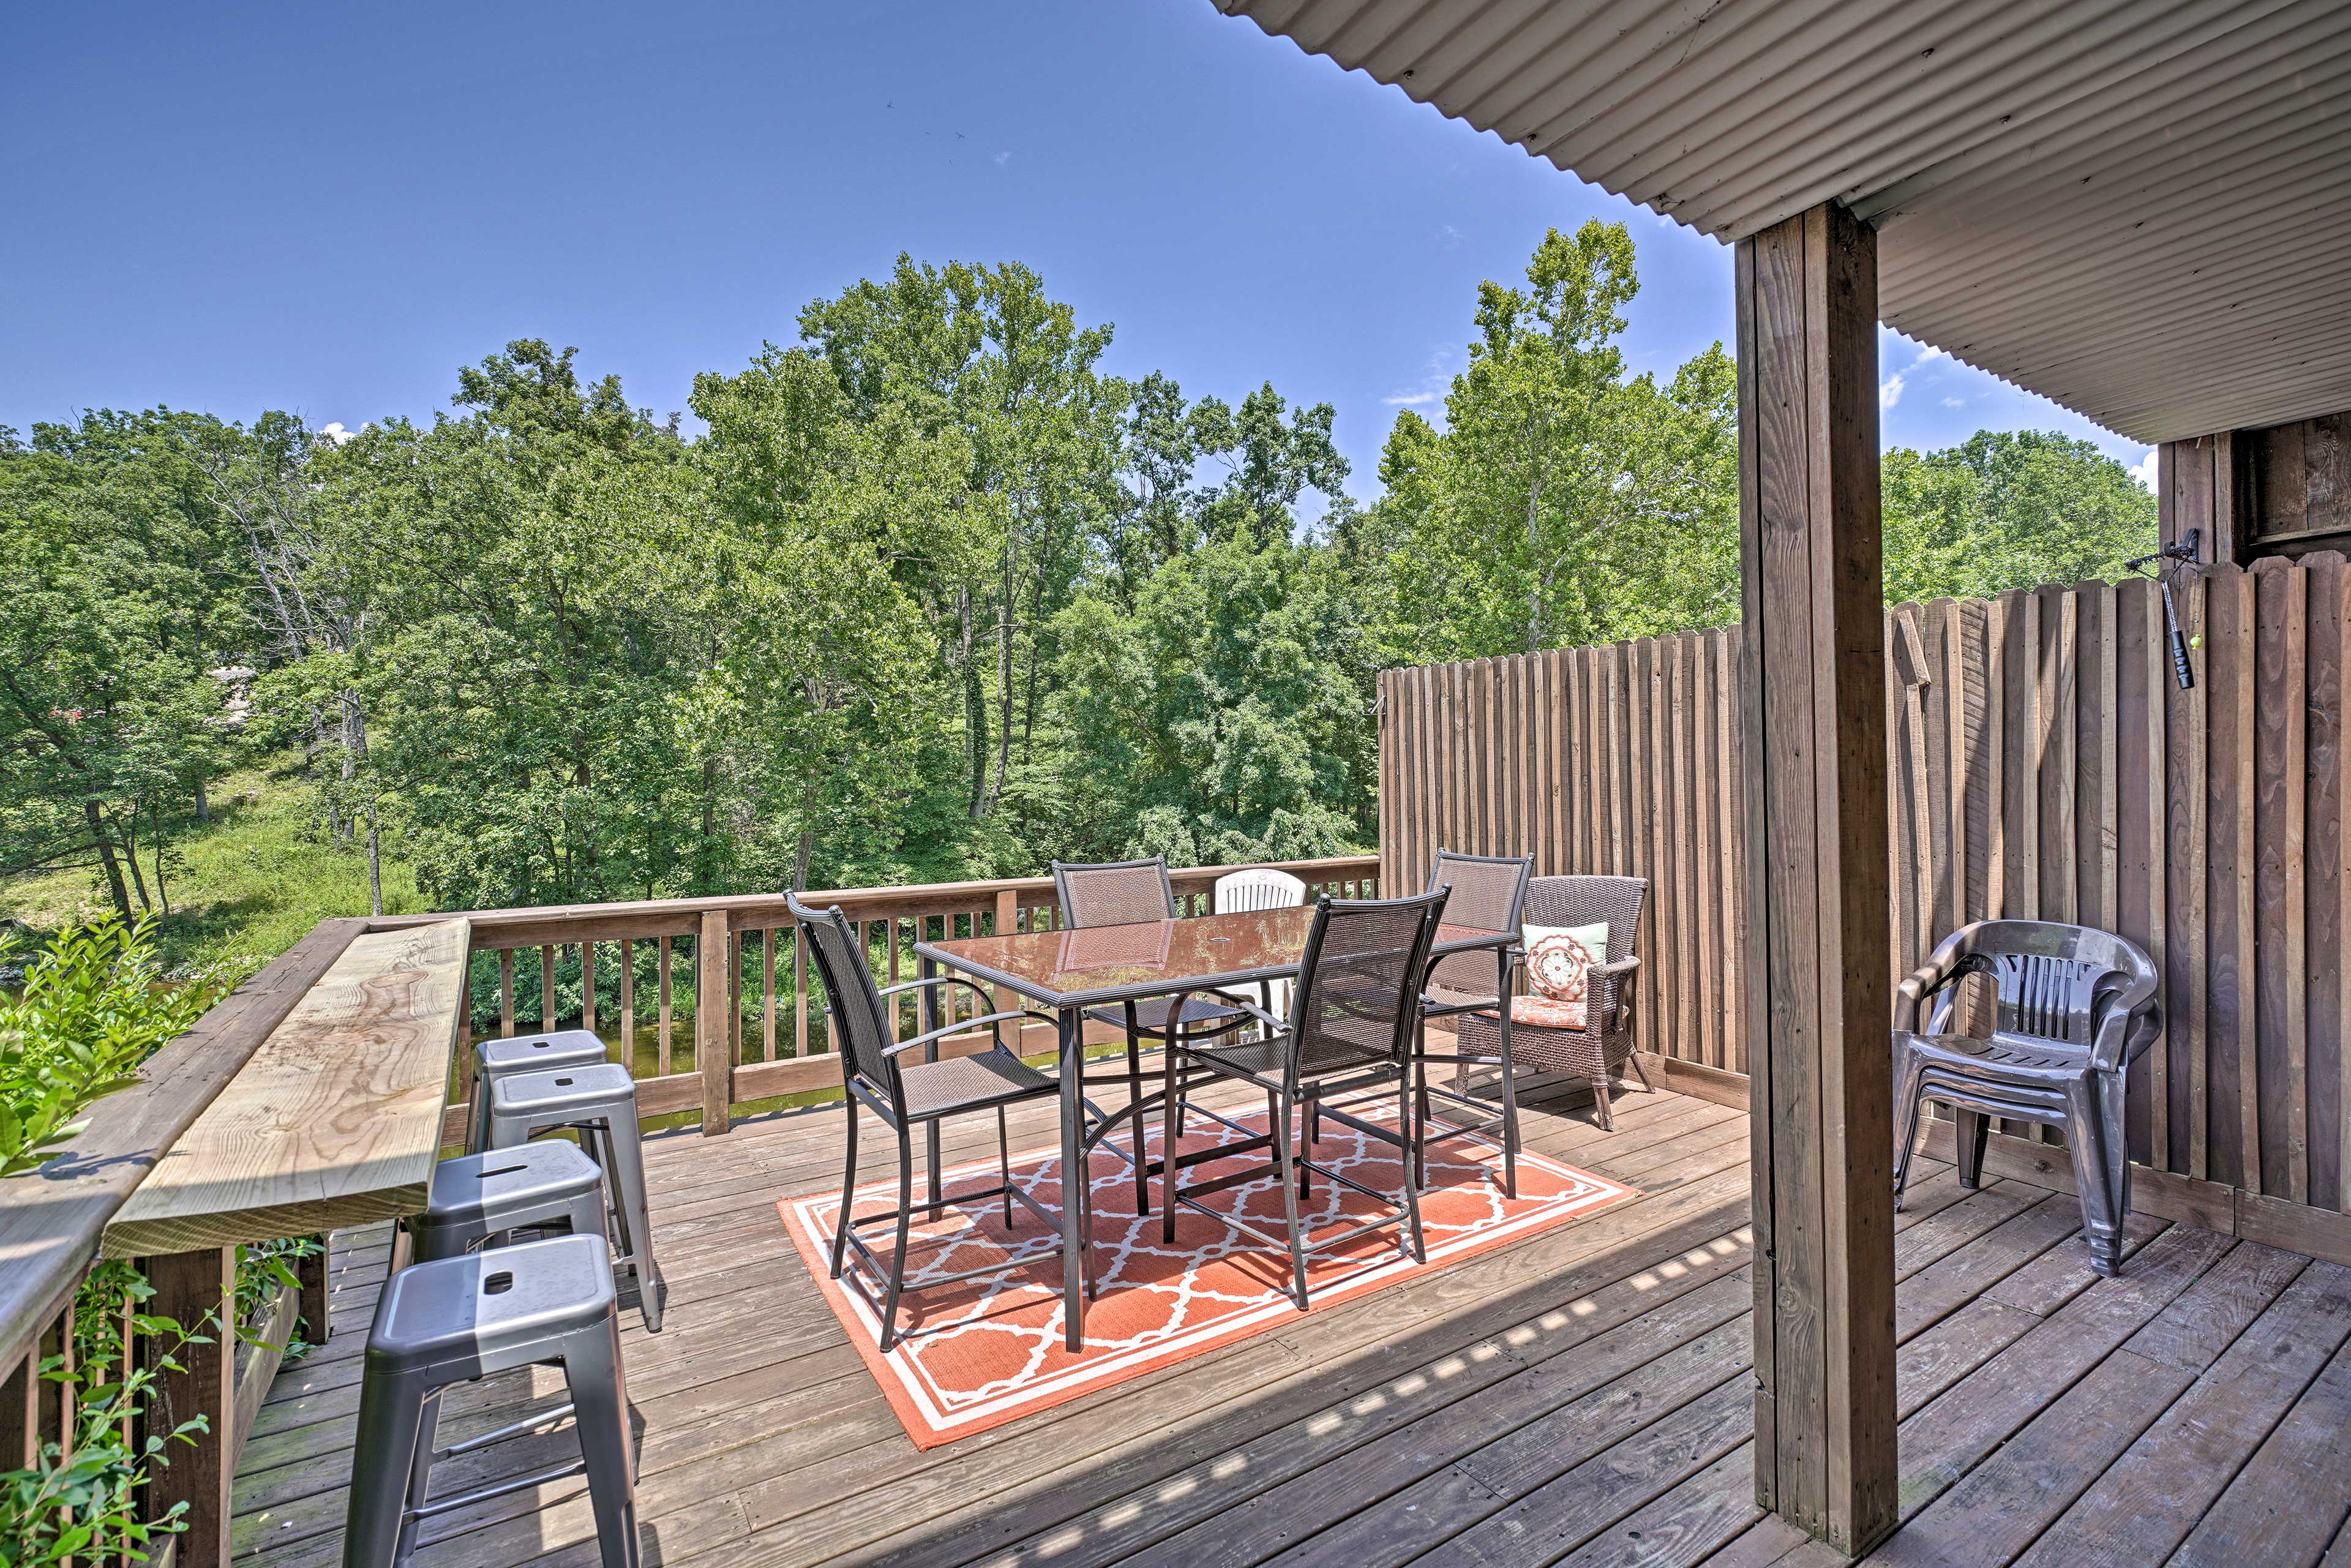 The extended upper deck can host the perfect dinner al fresco.